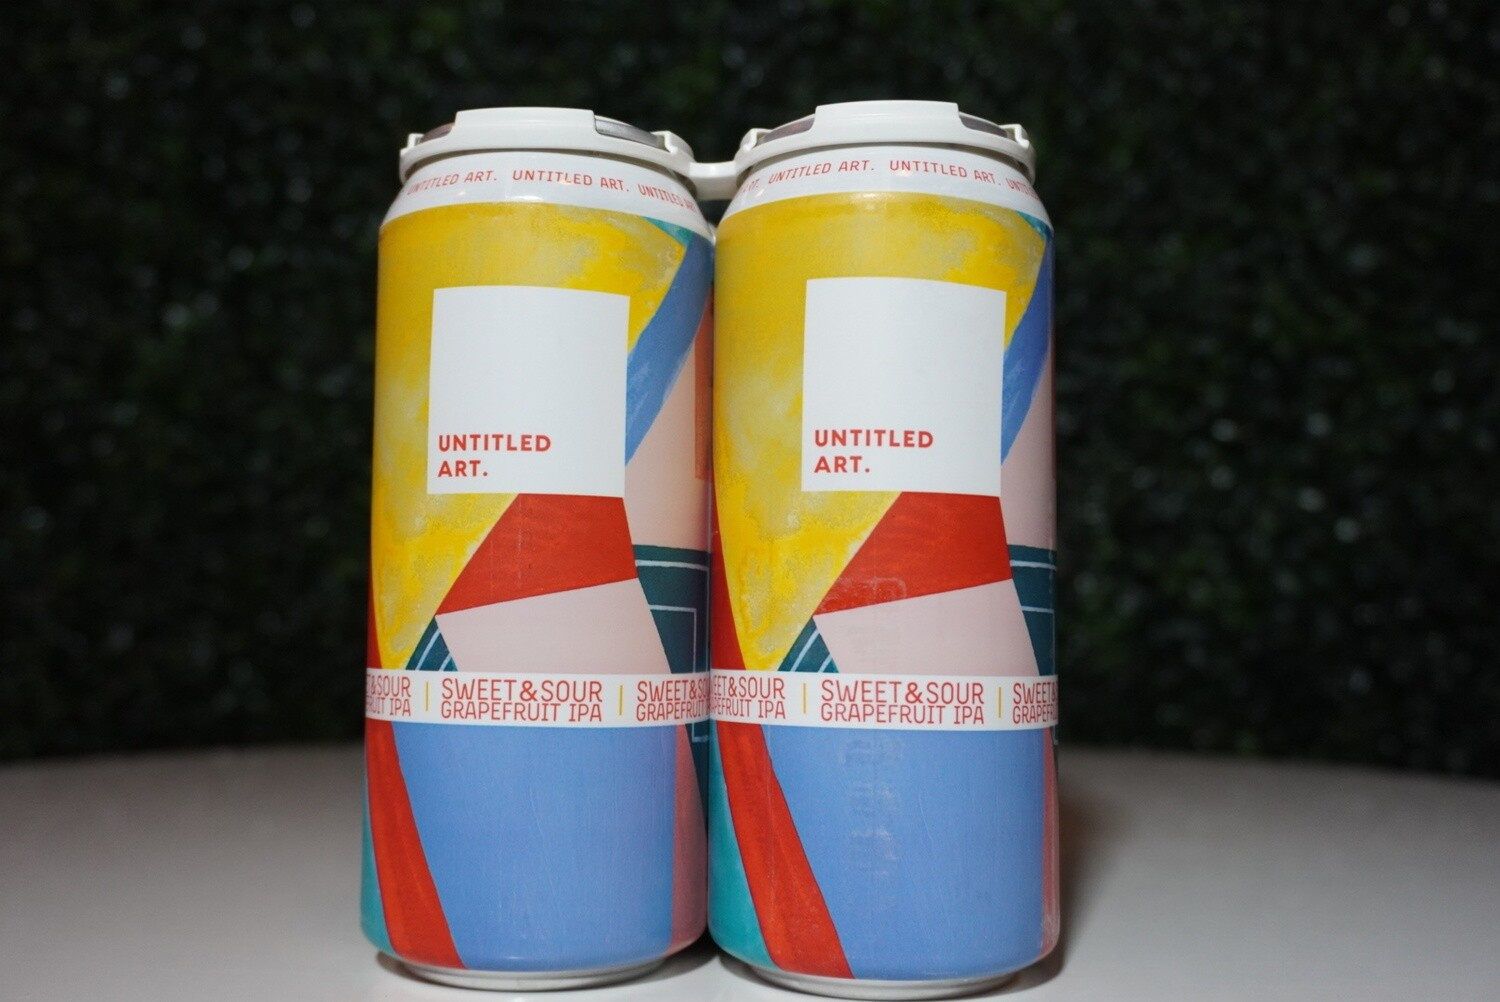 Untitled Art - Sweet and Sour Grapefruit IPA - IPA - 7% ABV - 4 Pack